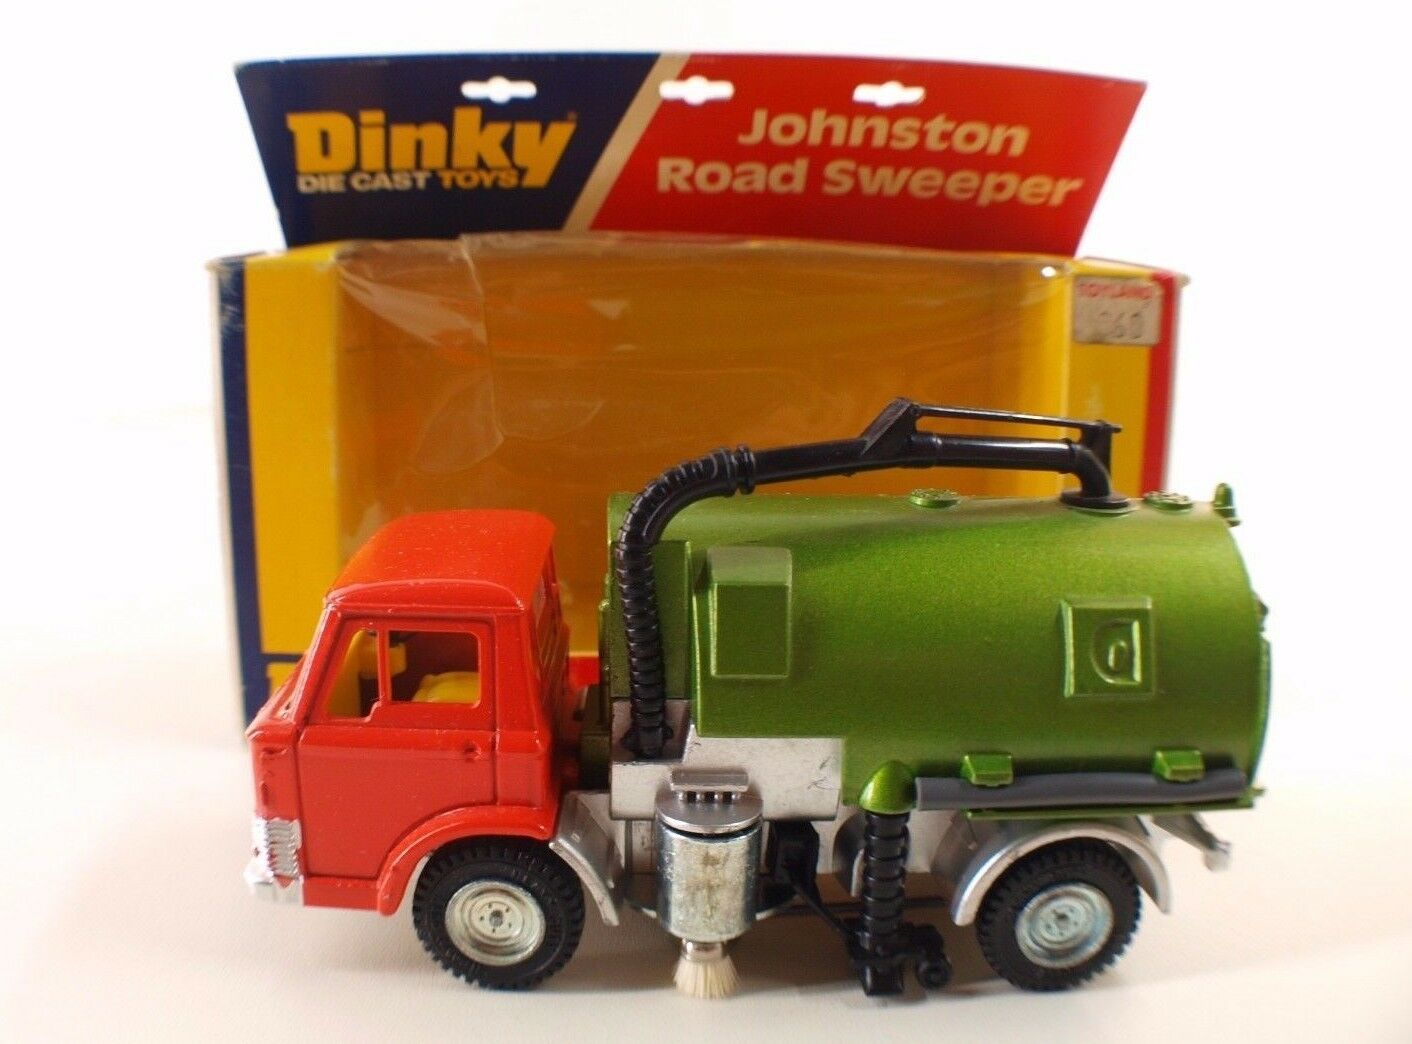 Dinky Toys  GB n° 449 camion Ford Johnston Road Sweeper neuf en boite MIB  magasin pas cher